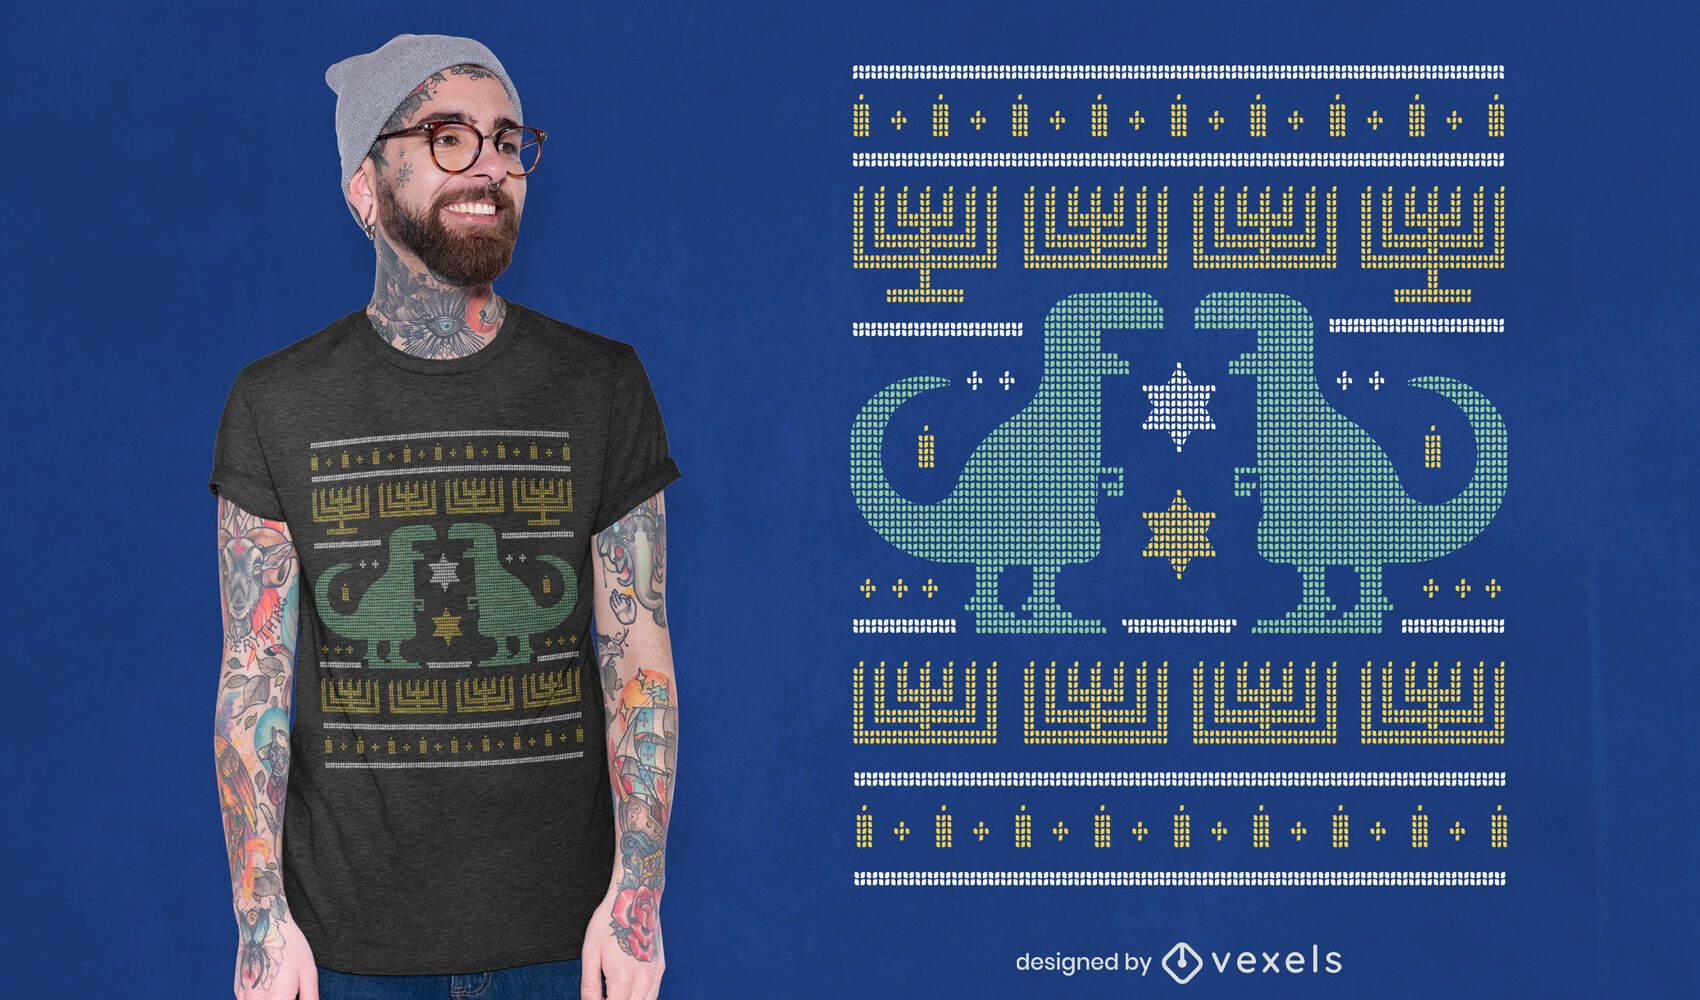 Dino ugly sweater t-shirt design